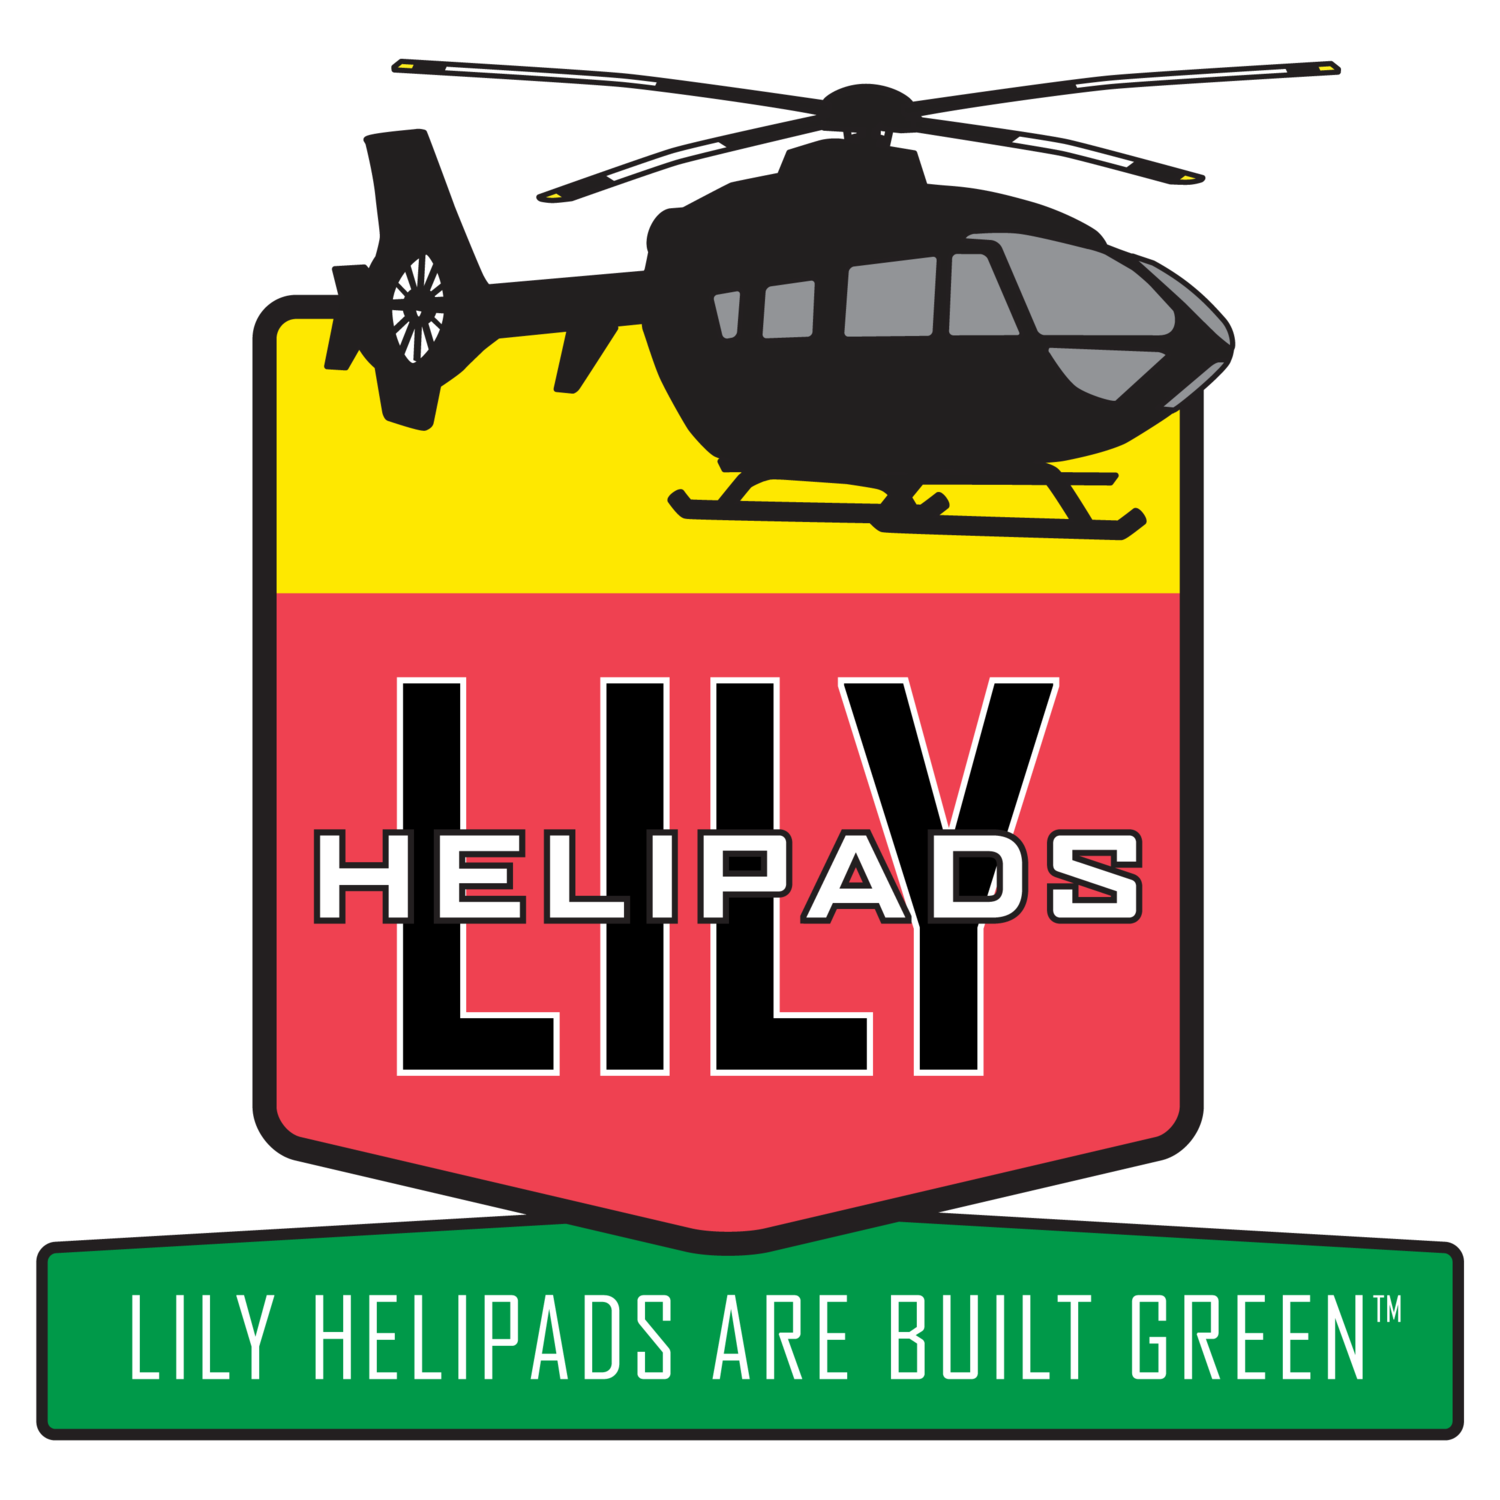 Helicopter clipart flying machine. Lily helipads